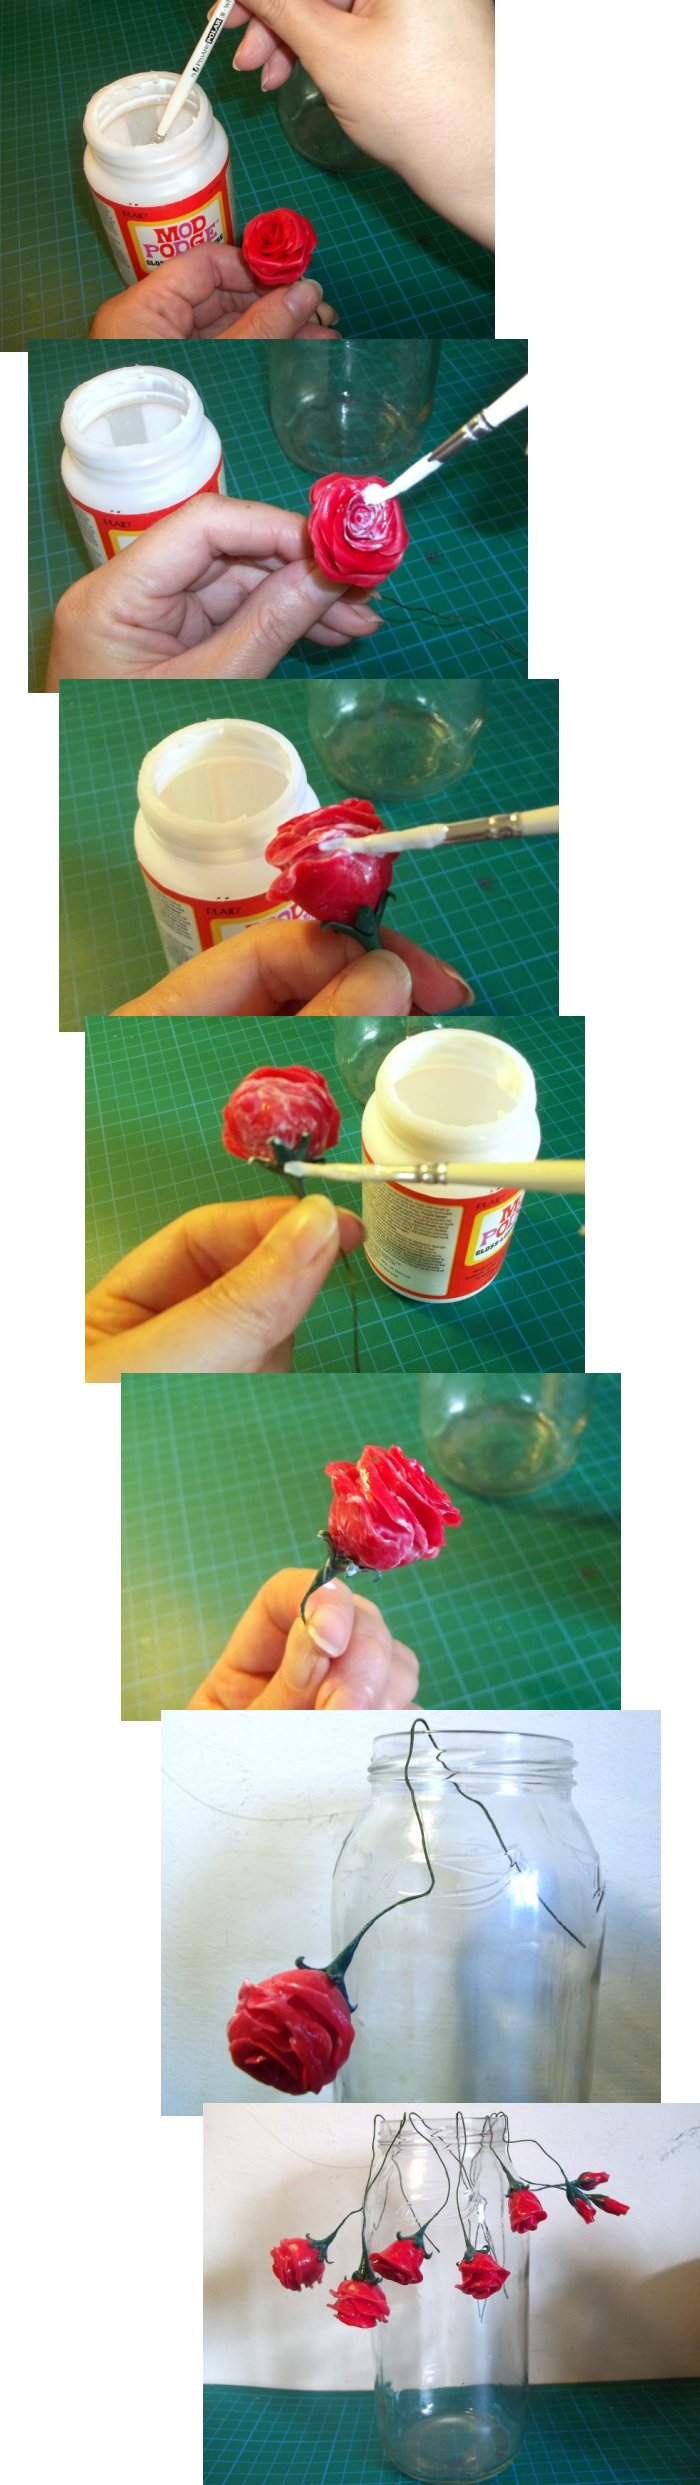 Things To Make And Do Making Cold Porcelain Roses